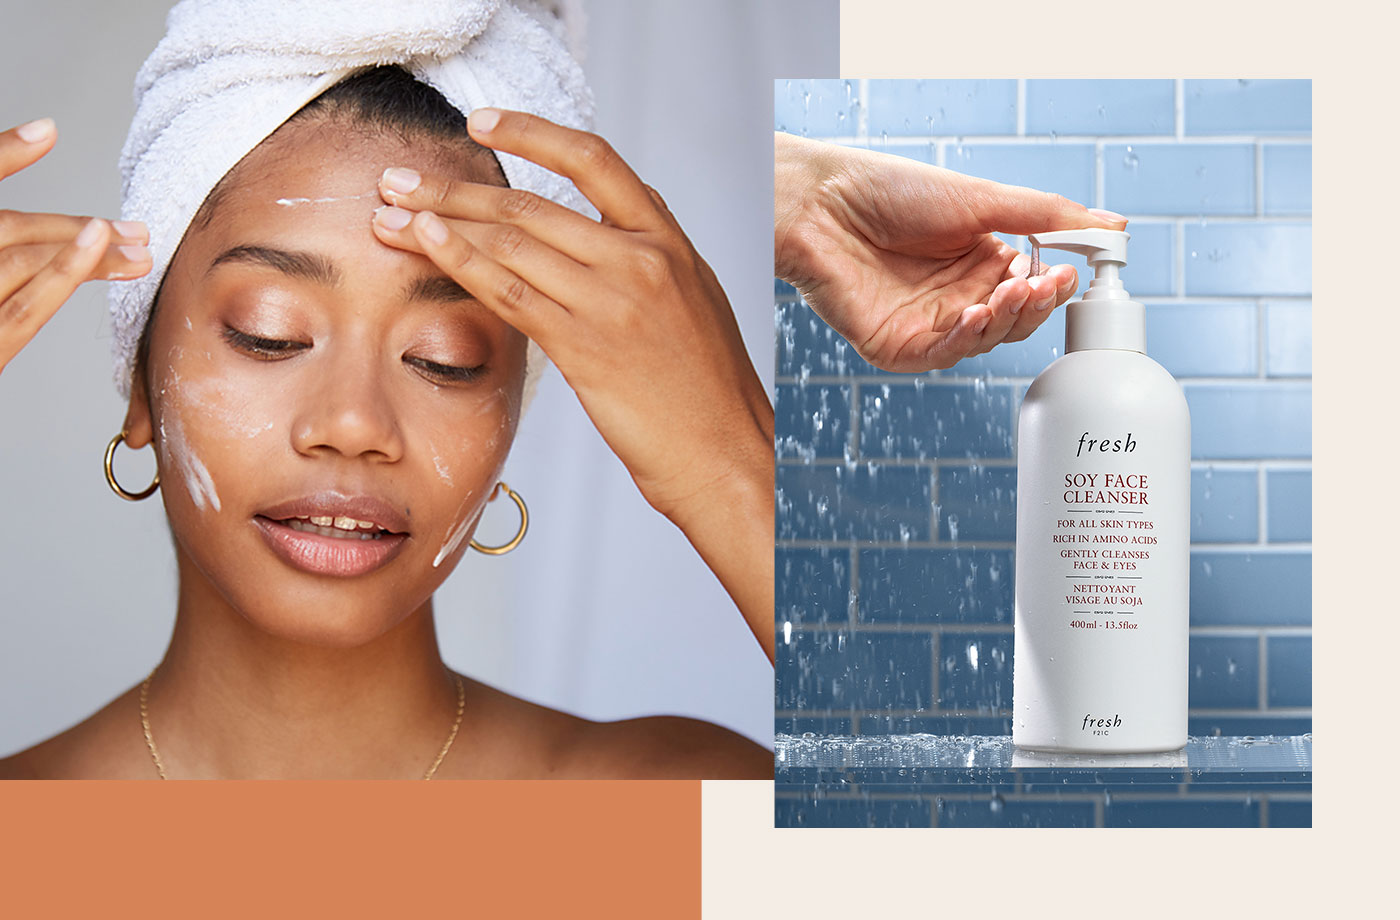 You can now get the cleanser all of our editors swear by in a size big enough to last all year